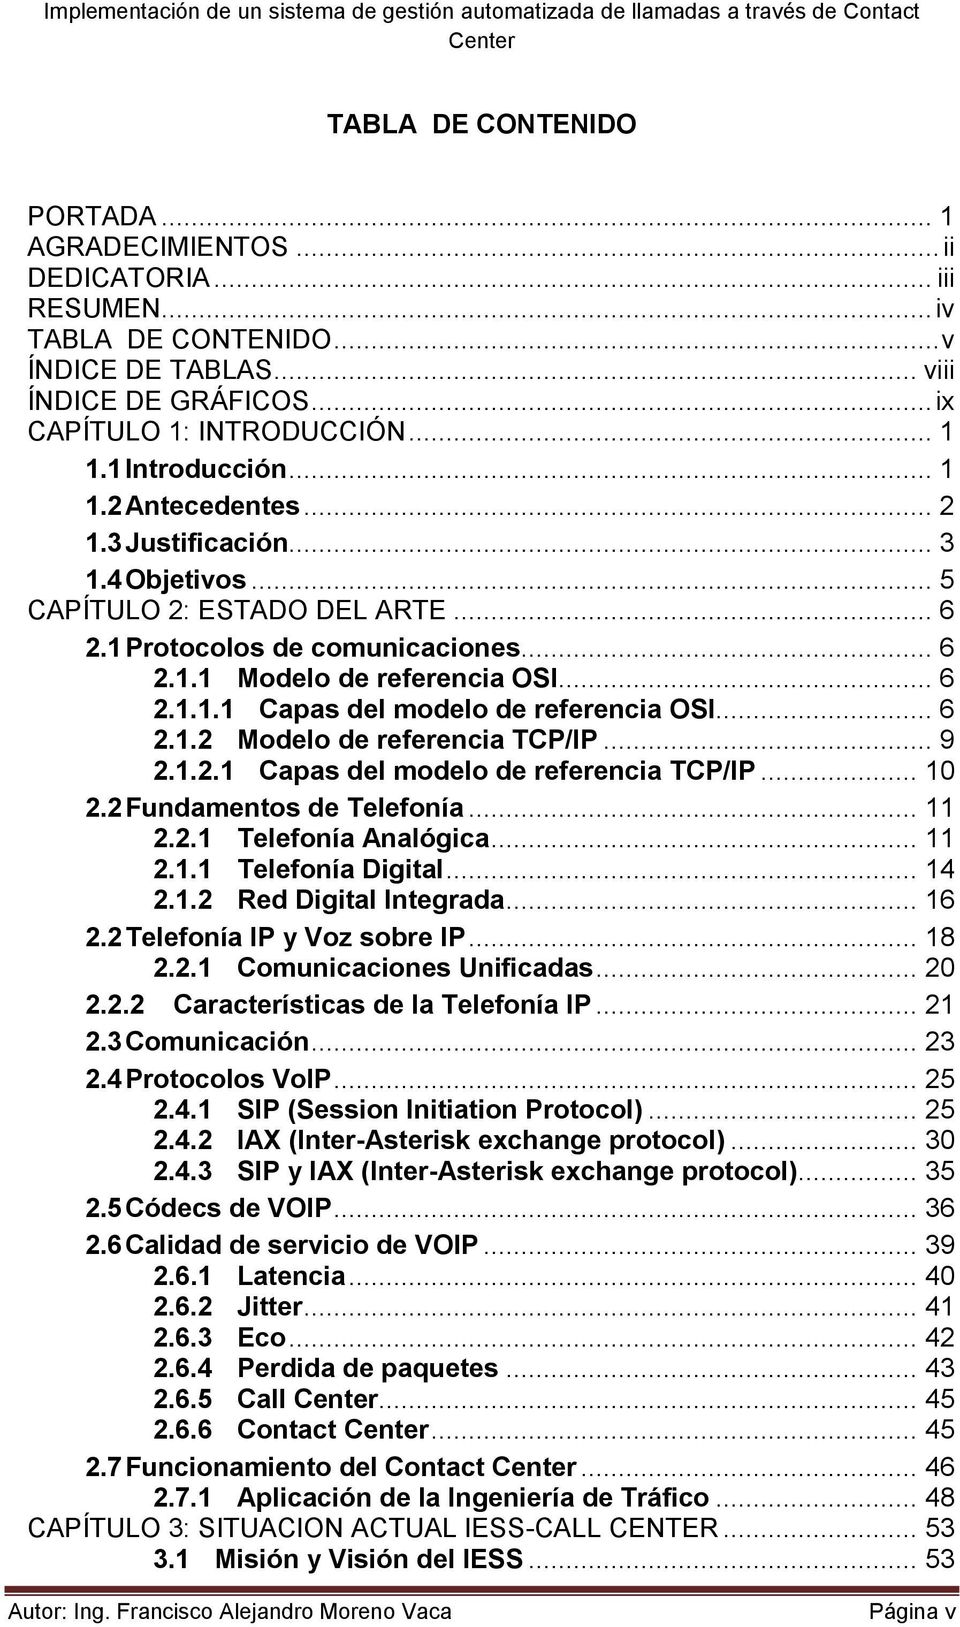 .. 6 2.1.2 Modelo de referencia TCP/IP... 9 2.1.2.1 Capas del modelo de referencia TCP/IP... 10 2.2 Fundamentos de Telefonía... 11 2.2.1 Telefonía Analógica... 11 2.1.1 Telefonía Digital... 14 2.1.2 Red Digital Integrada.